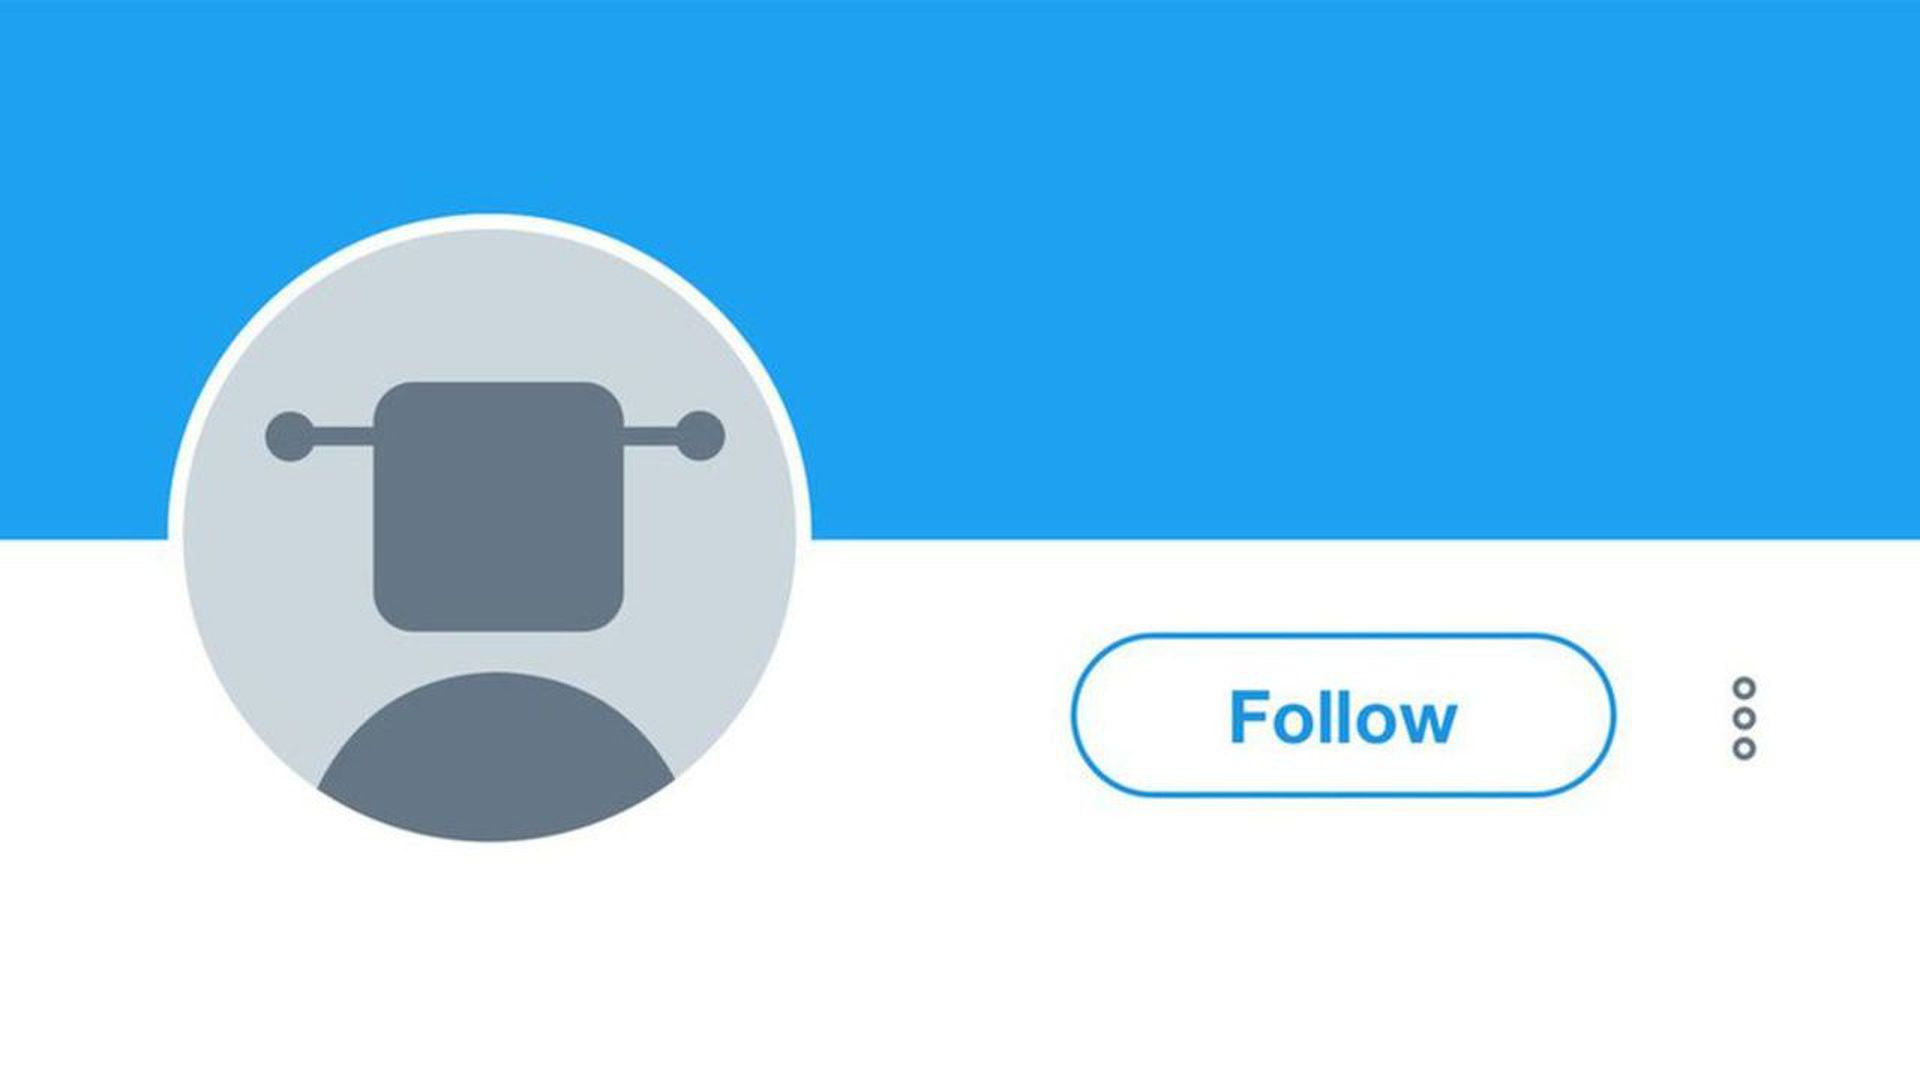 A twitter profile with a robot as the avatar